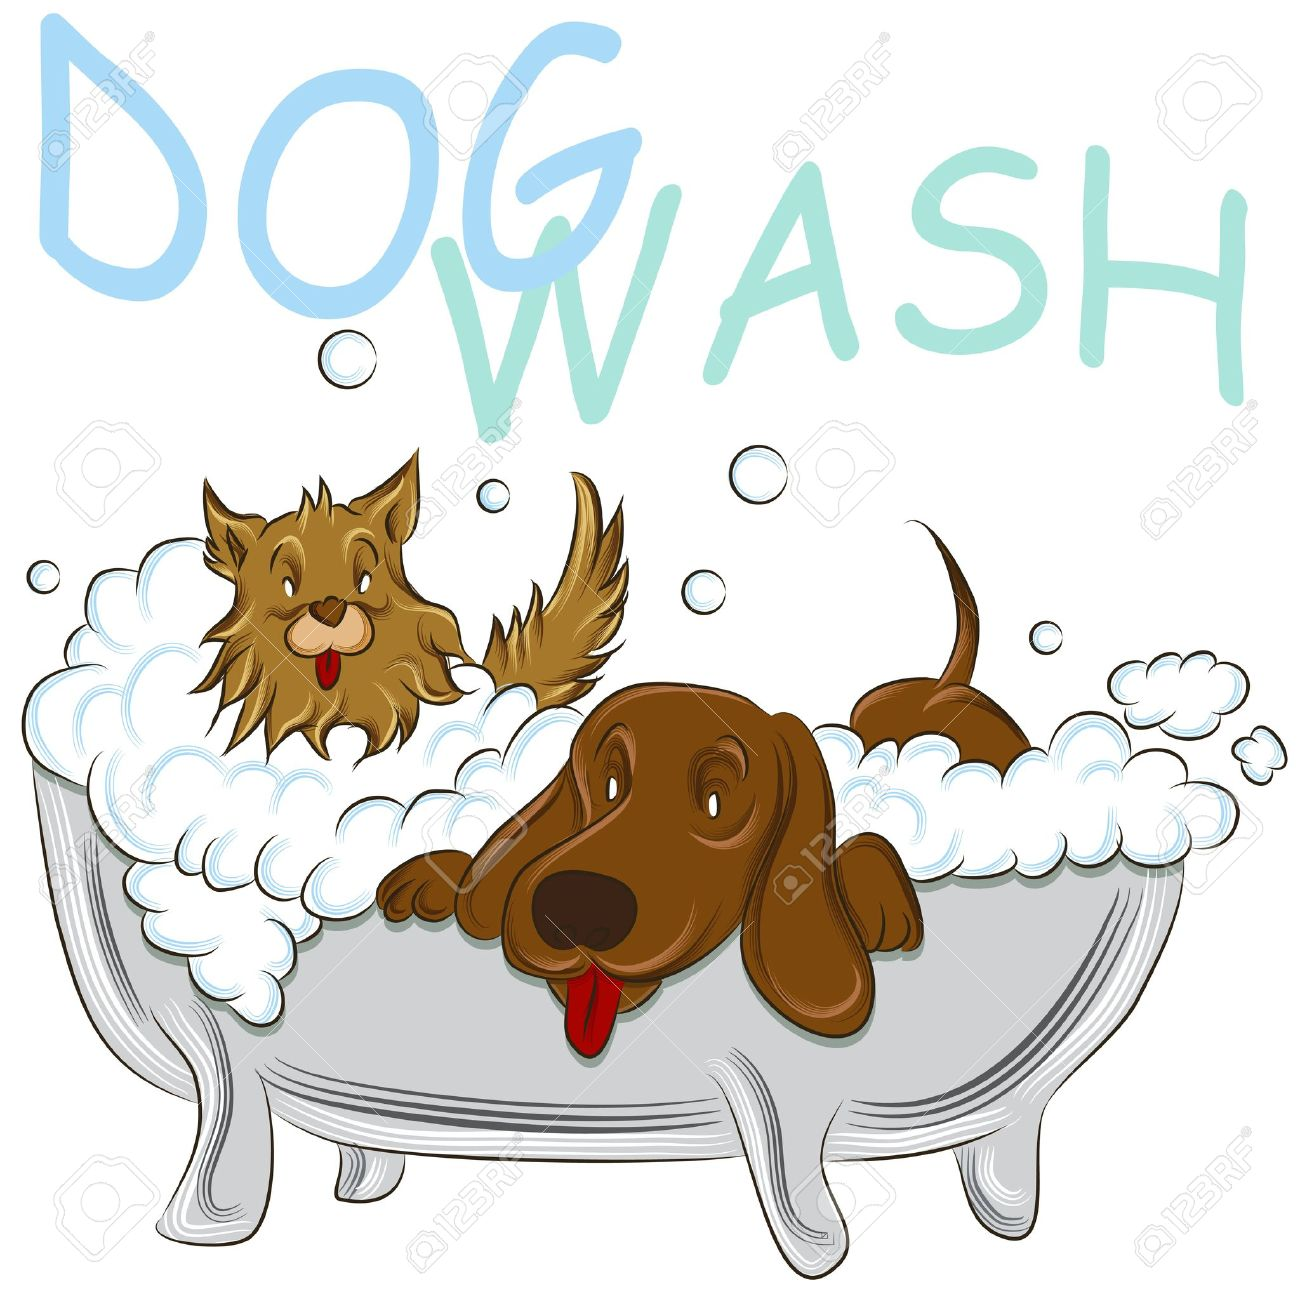 an image of a two clean dogs in a bathtub royalty free cliparts